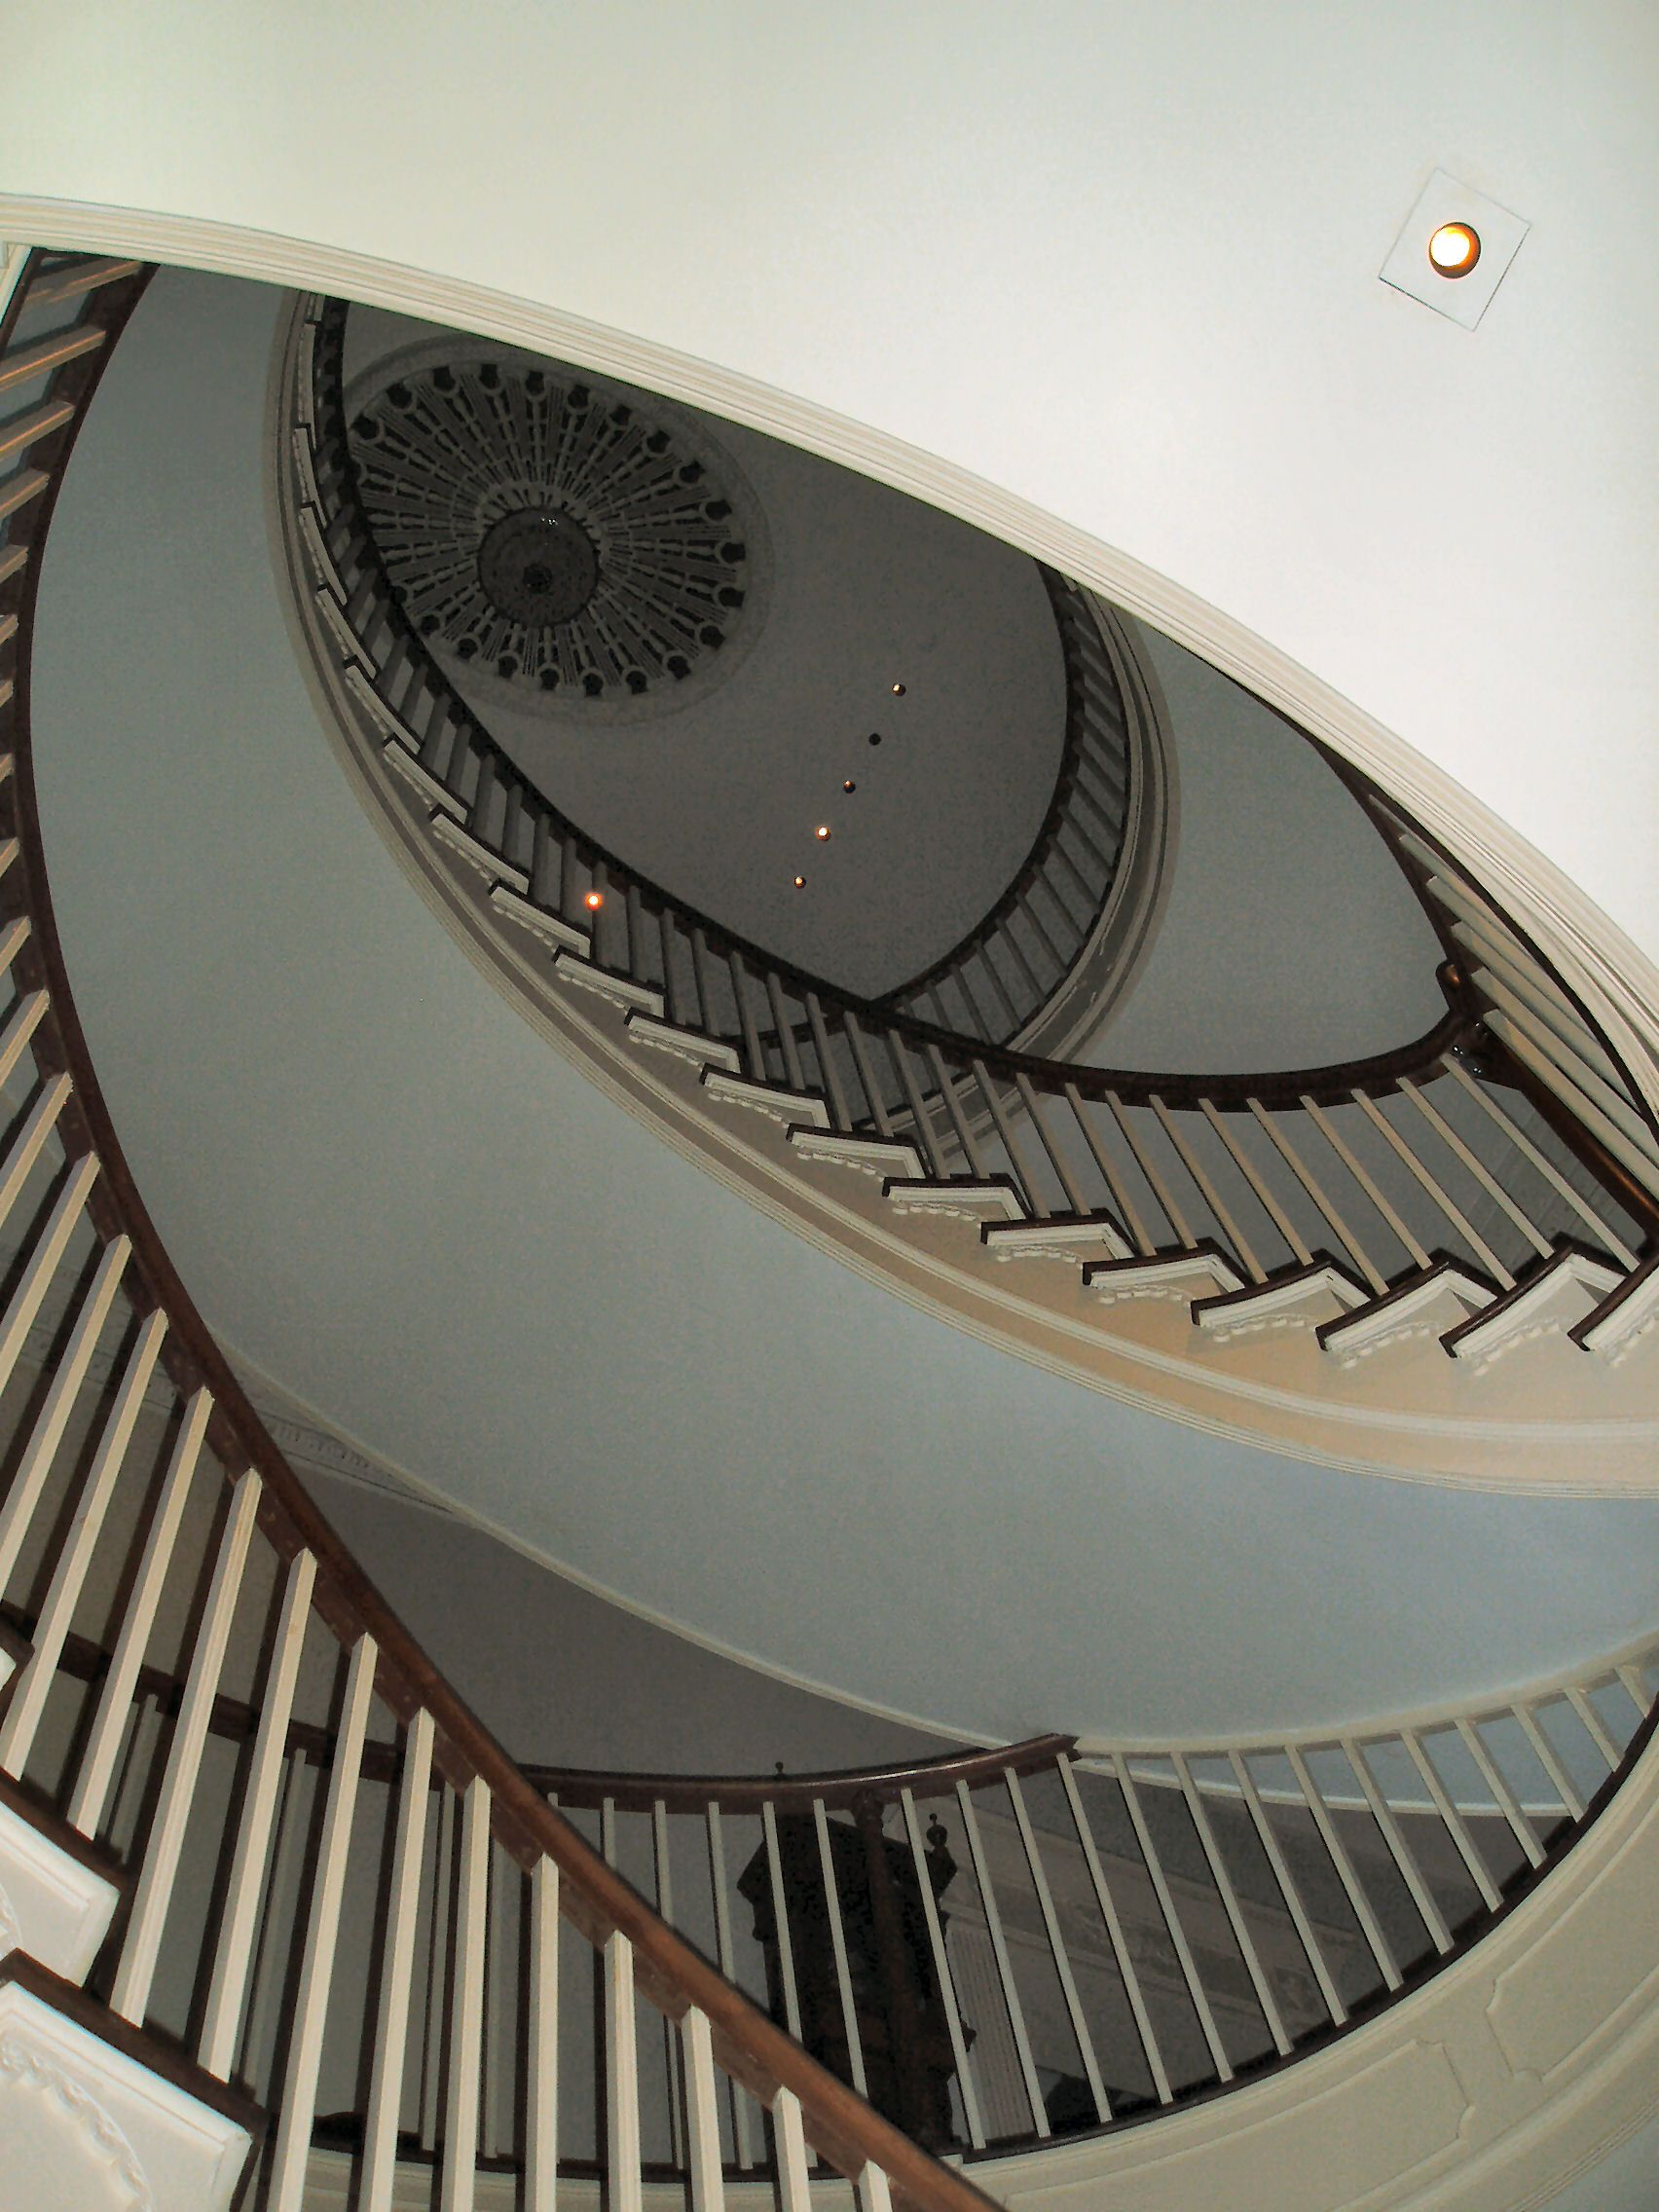 The Montmorenci Staircase, Winterthur Museum, The Largest Free Standing  Spiral Staircase. Installed By HF DuPont While His Family Was Away As A  Surprise.